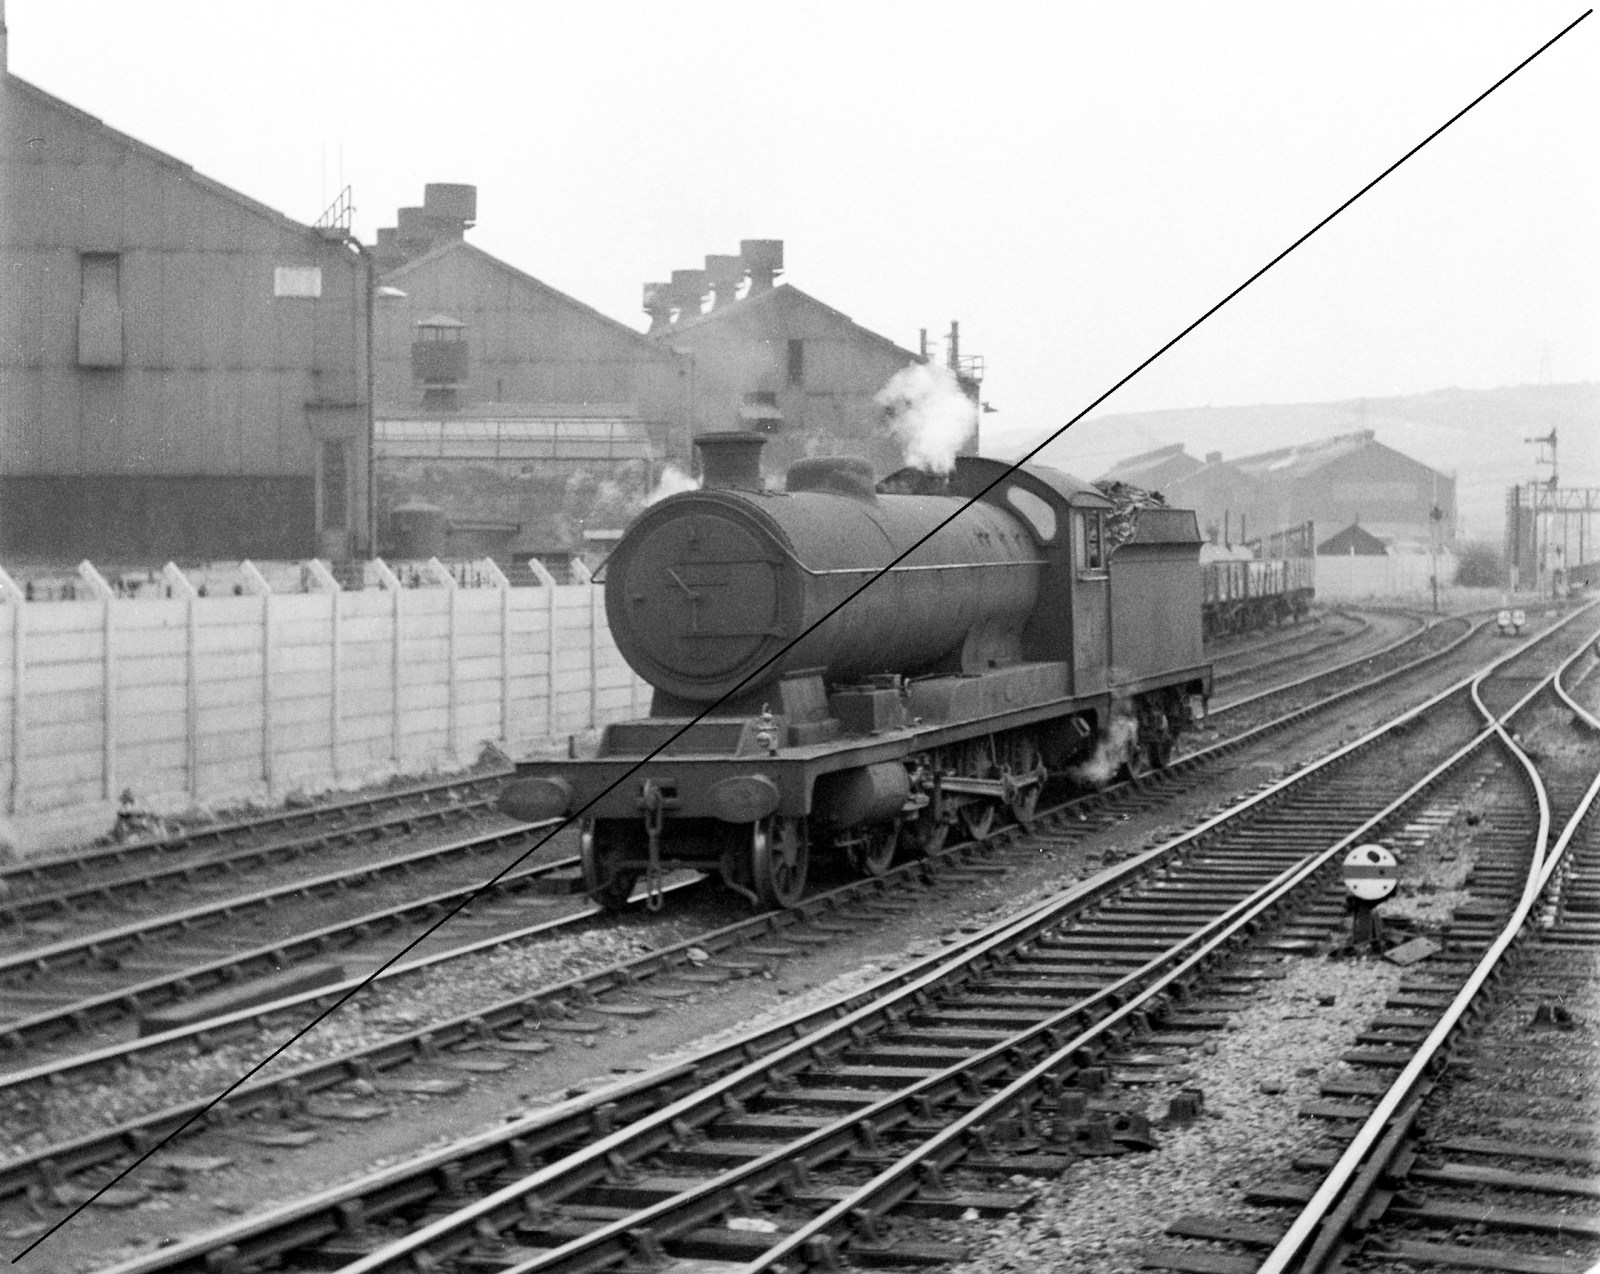 CAIMF627-GO.435-1914, Class 04-8, No.63624, (Shed No. 41A, Darnall), near Tinsley South Junction S.B., looking towards Tinsley West Junction, with Hadfield and Co. Ltd., East Hecla Works on L.H.S.-03-09-1960.jpg